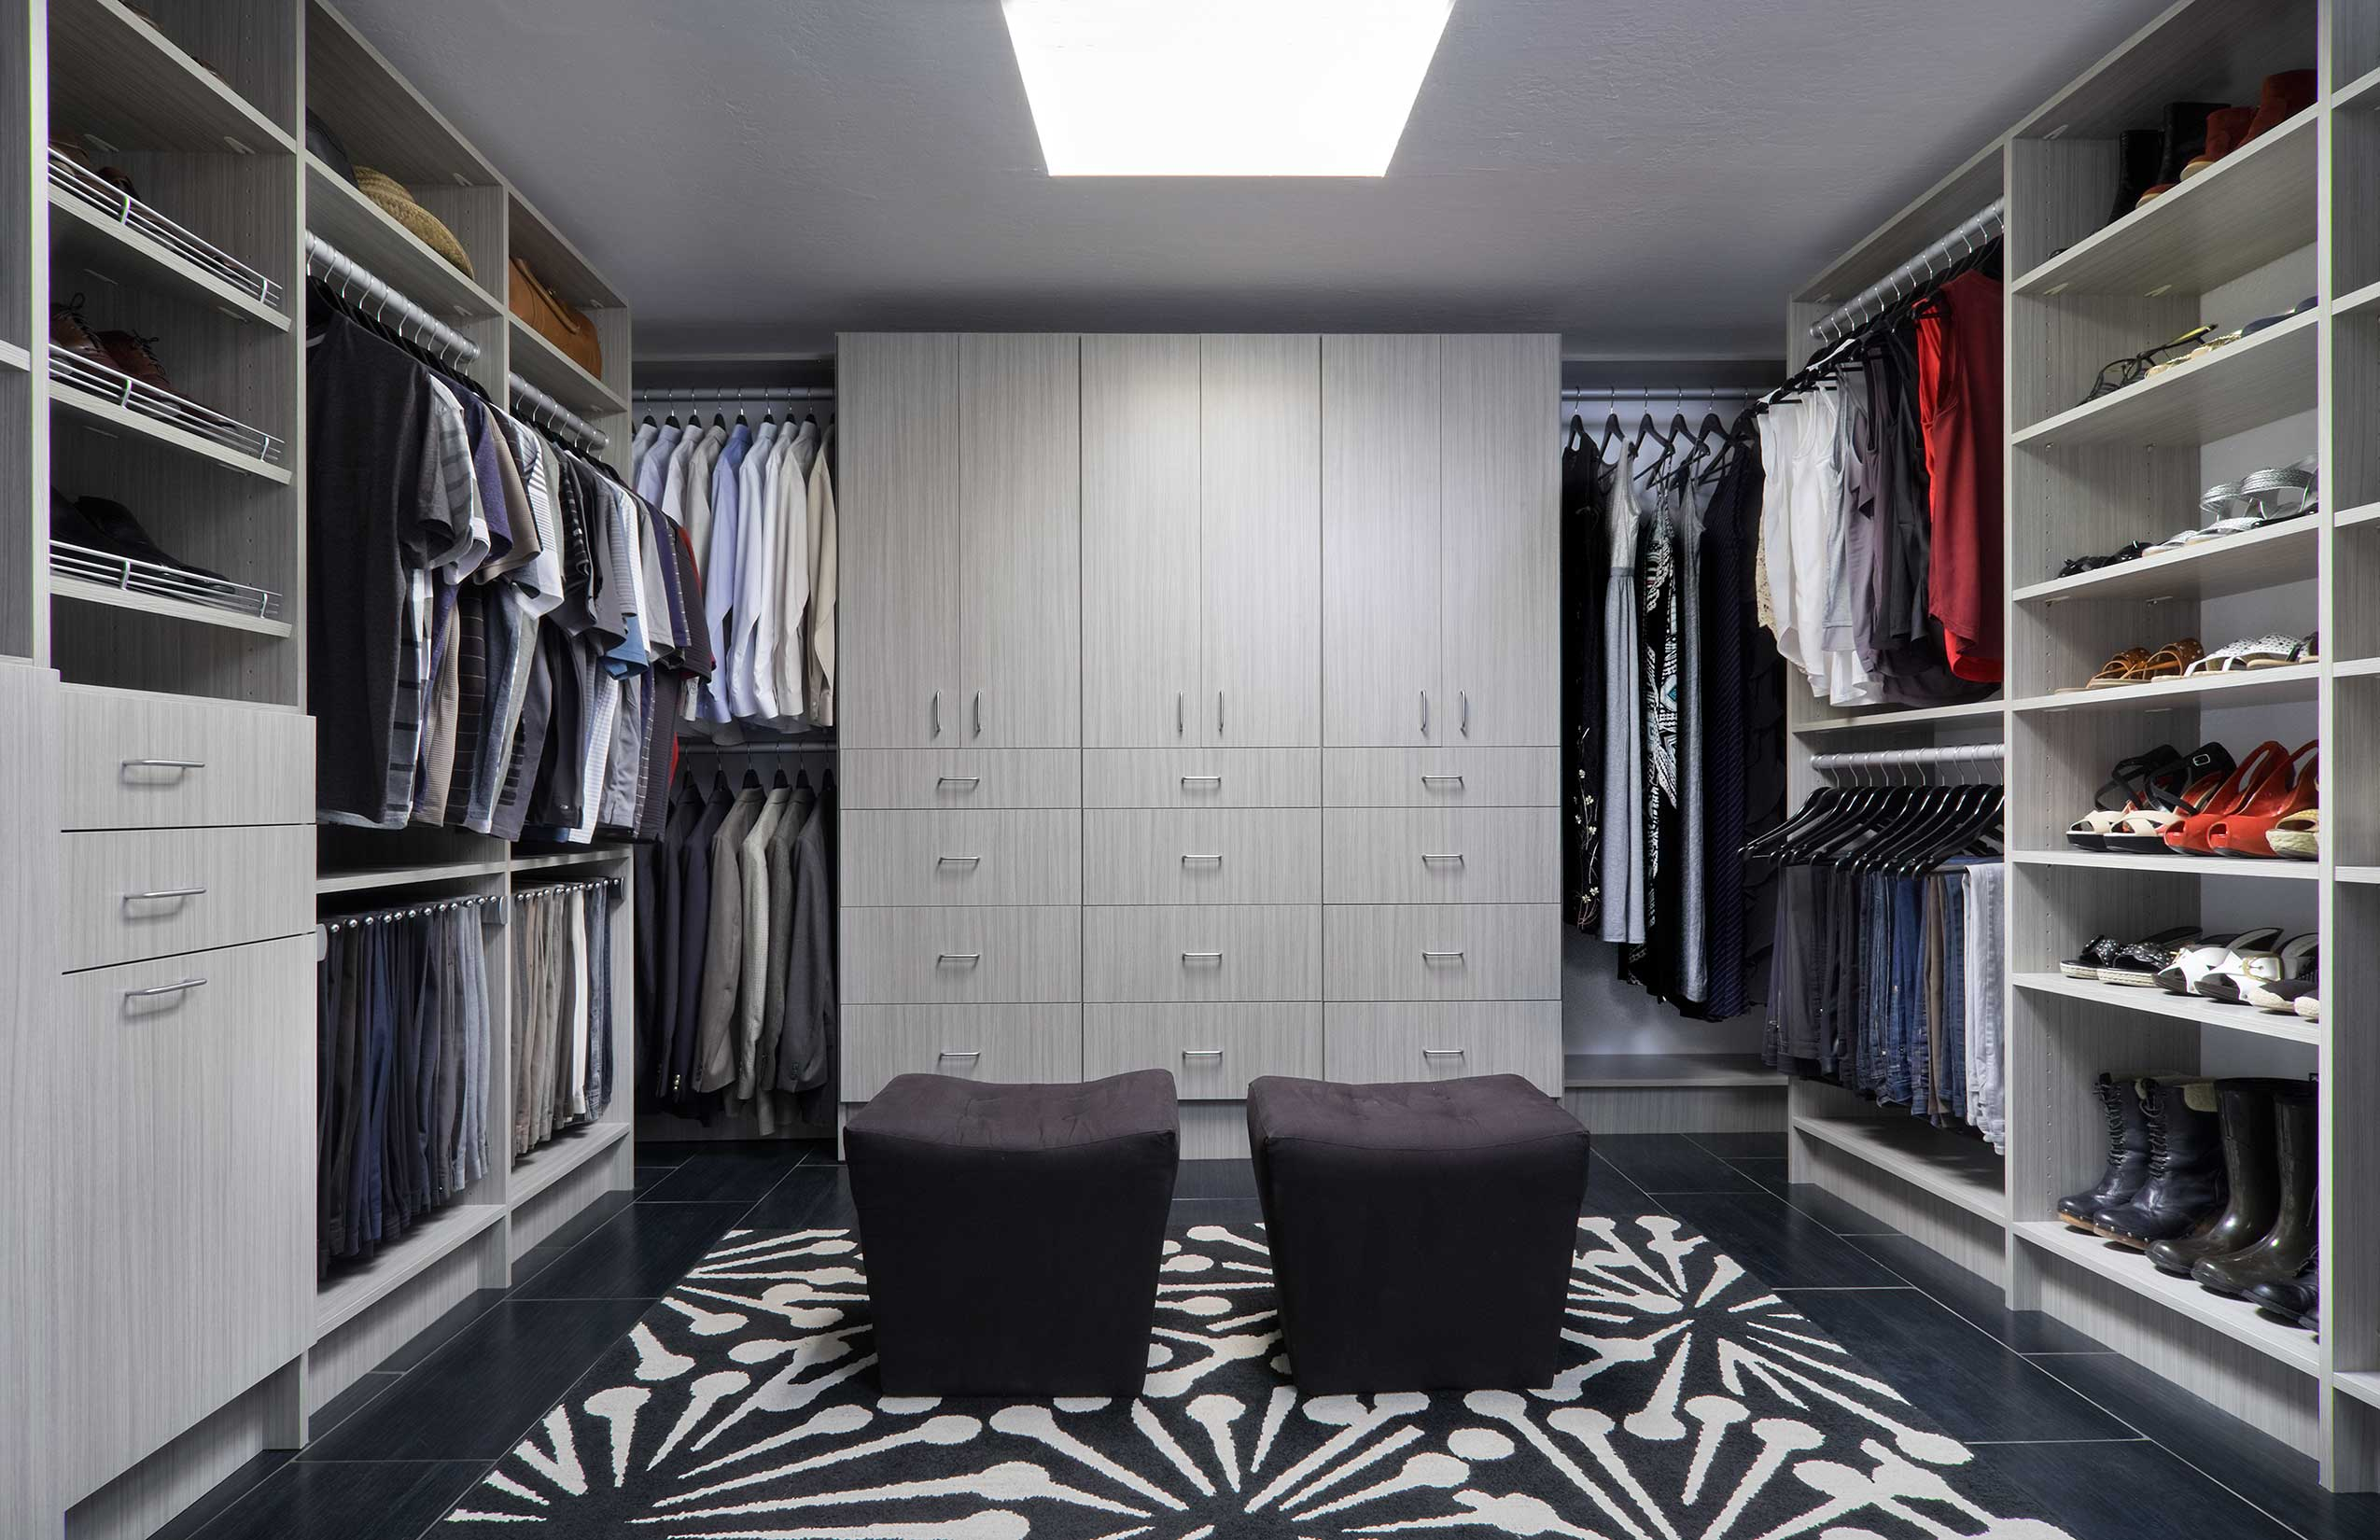 Our Closet Systems Come From Organizeru0027s Direct, The Newest Company Founded  By Neil Balter, The Original Founder Of California Closets.